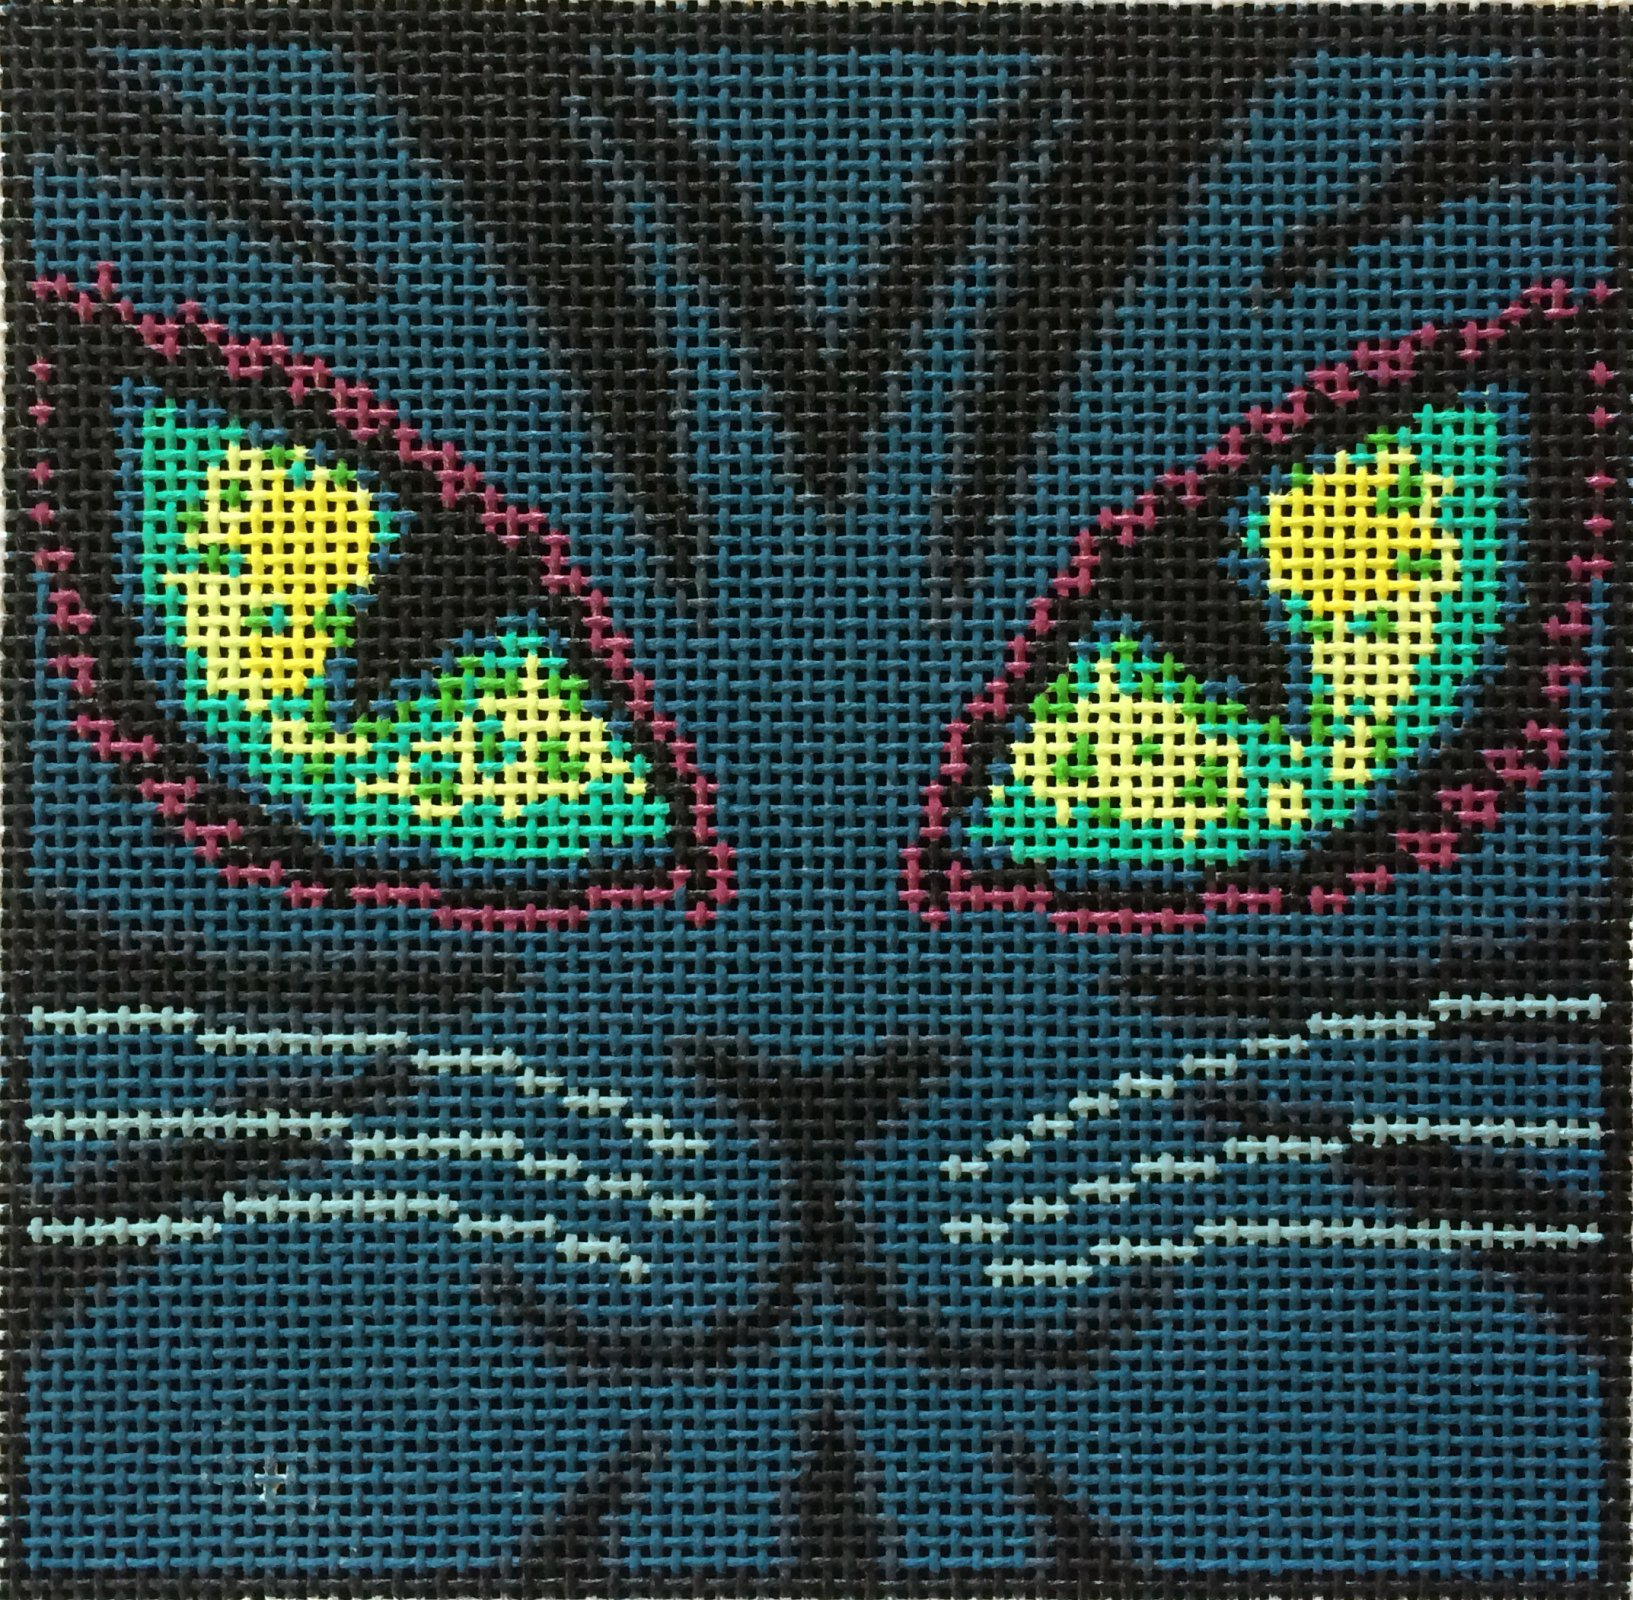 DH3897 - Midnite the Cat